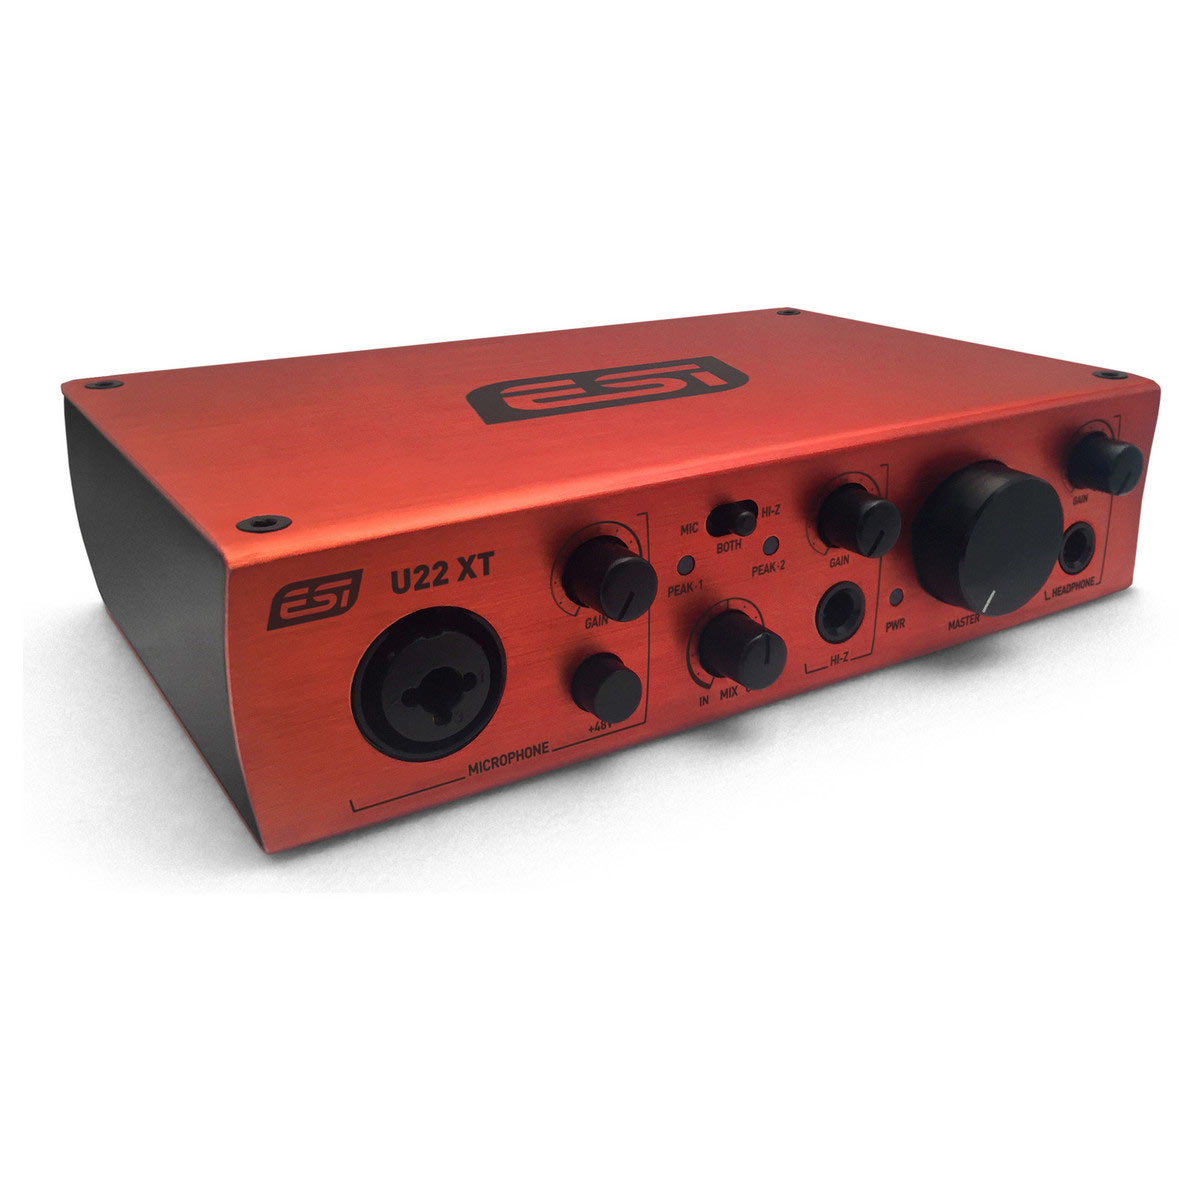 ESI U22XT - Interface audio USB